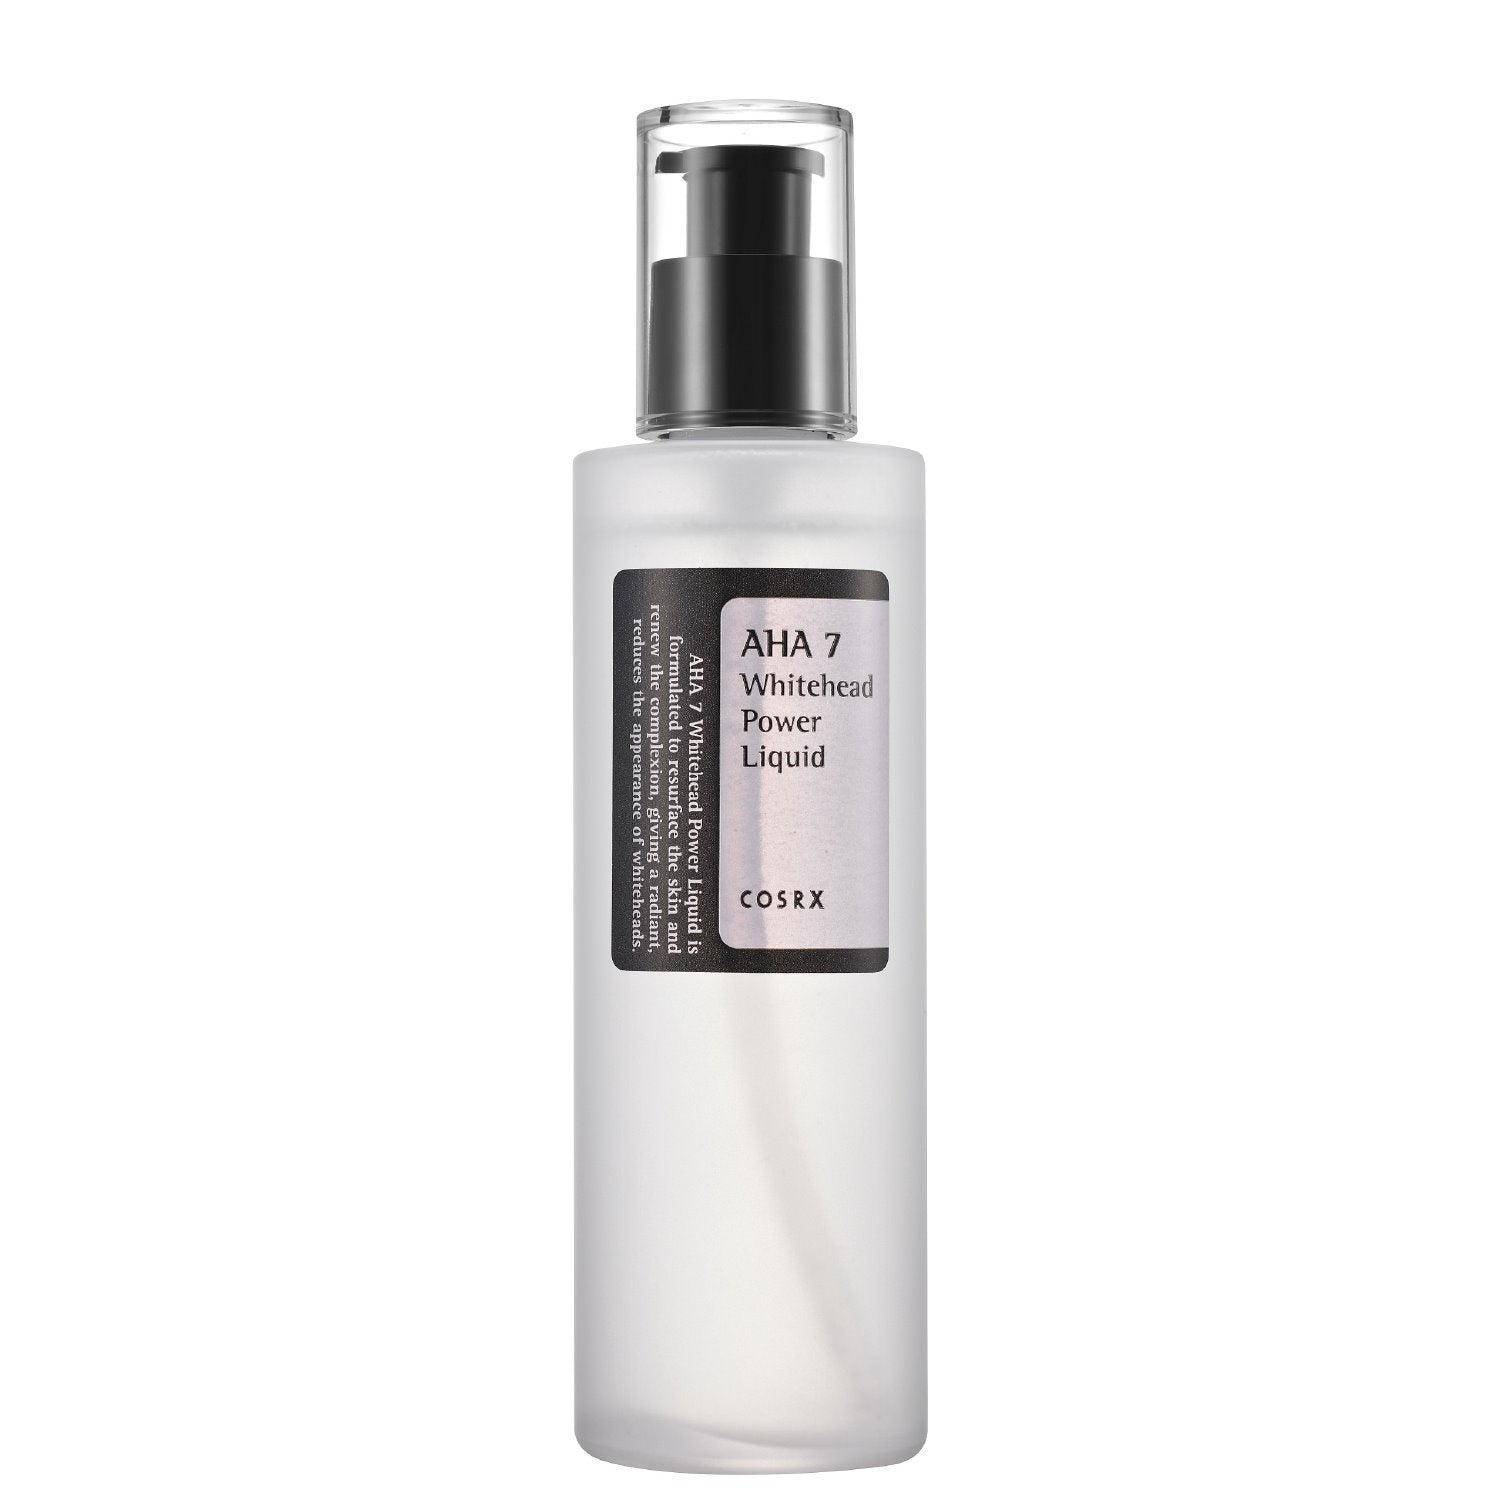 COSRX AHA 7 Whitehead Power Liquid (100ml) Toner - Skinspace